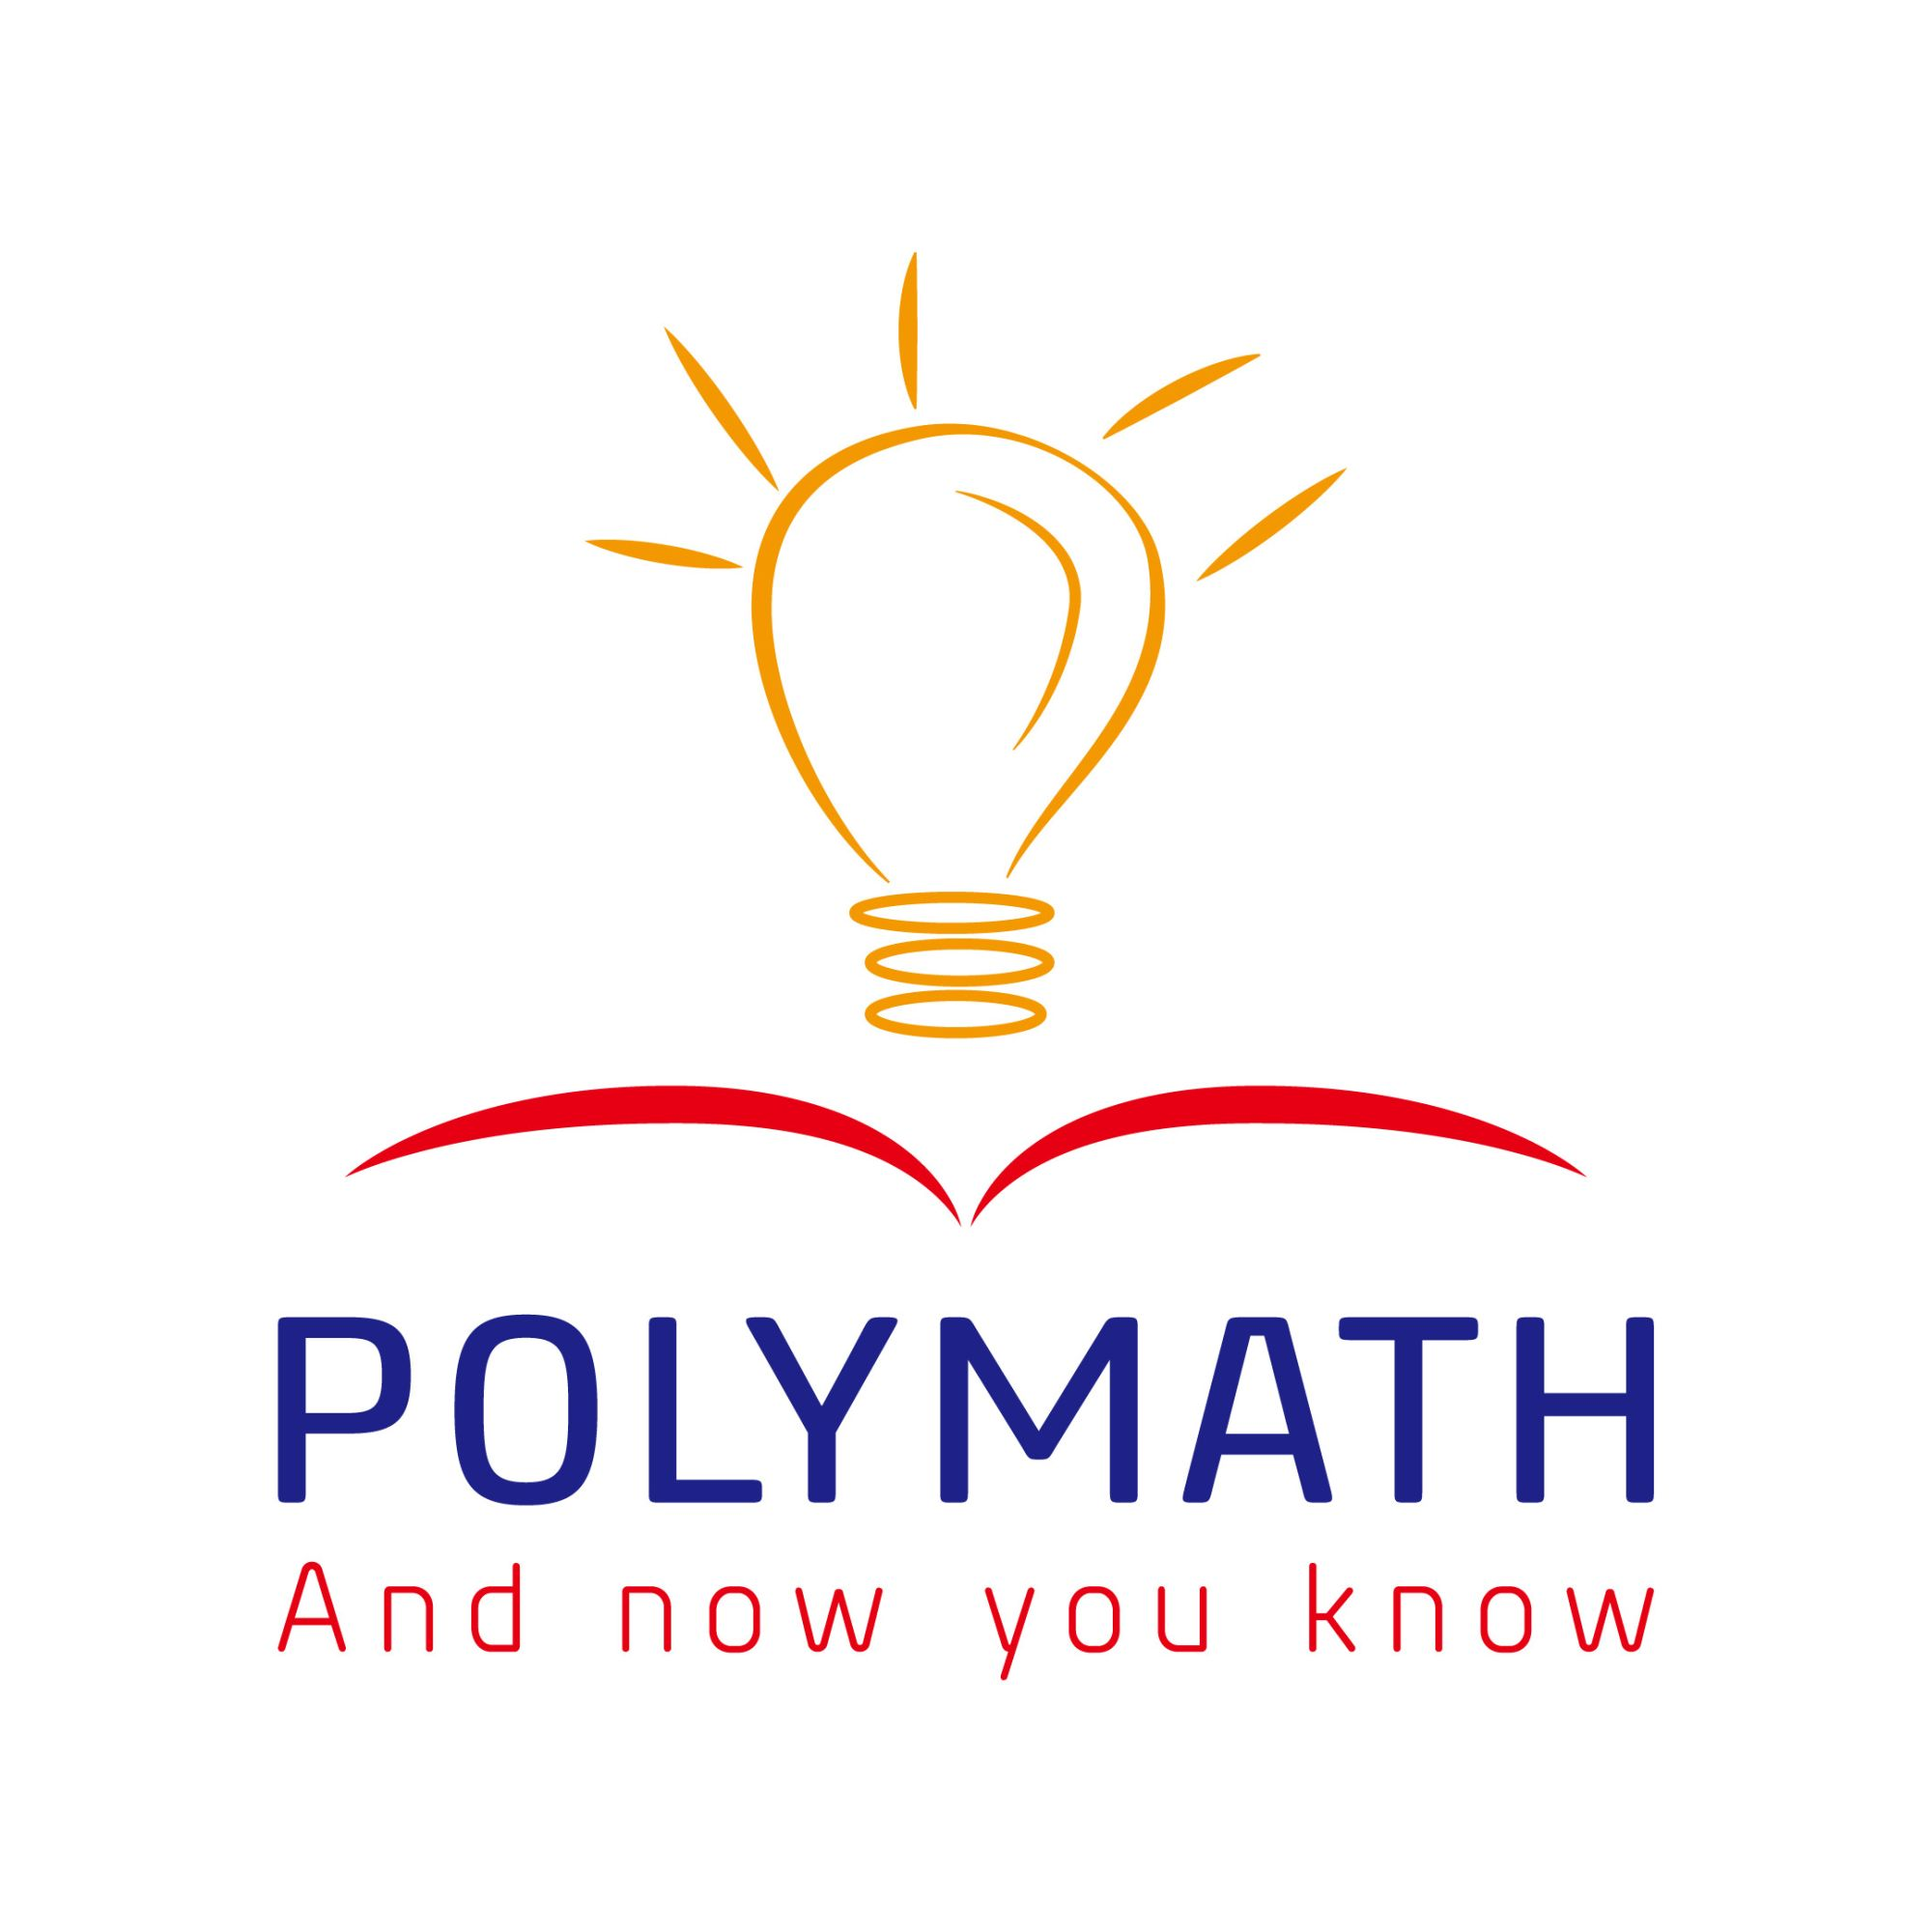 Logo Design by Cross Desain - Entry No. 69 in the Logo Design Contest Imaginative Logo Design for Polymath.